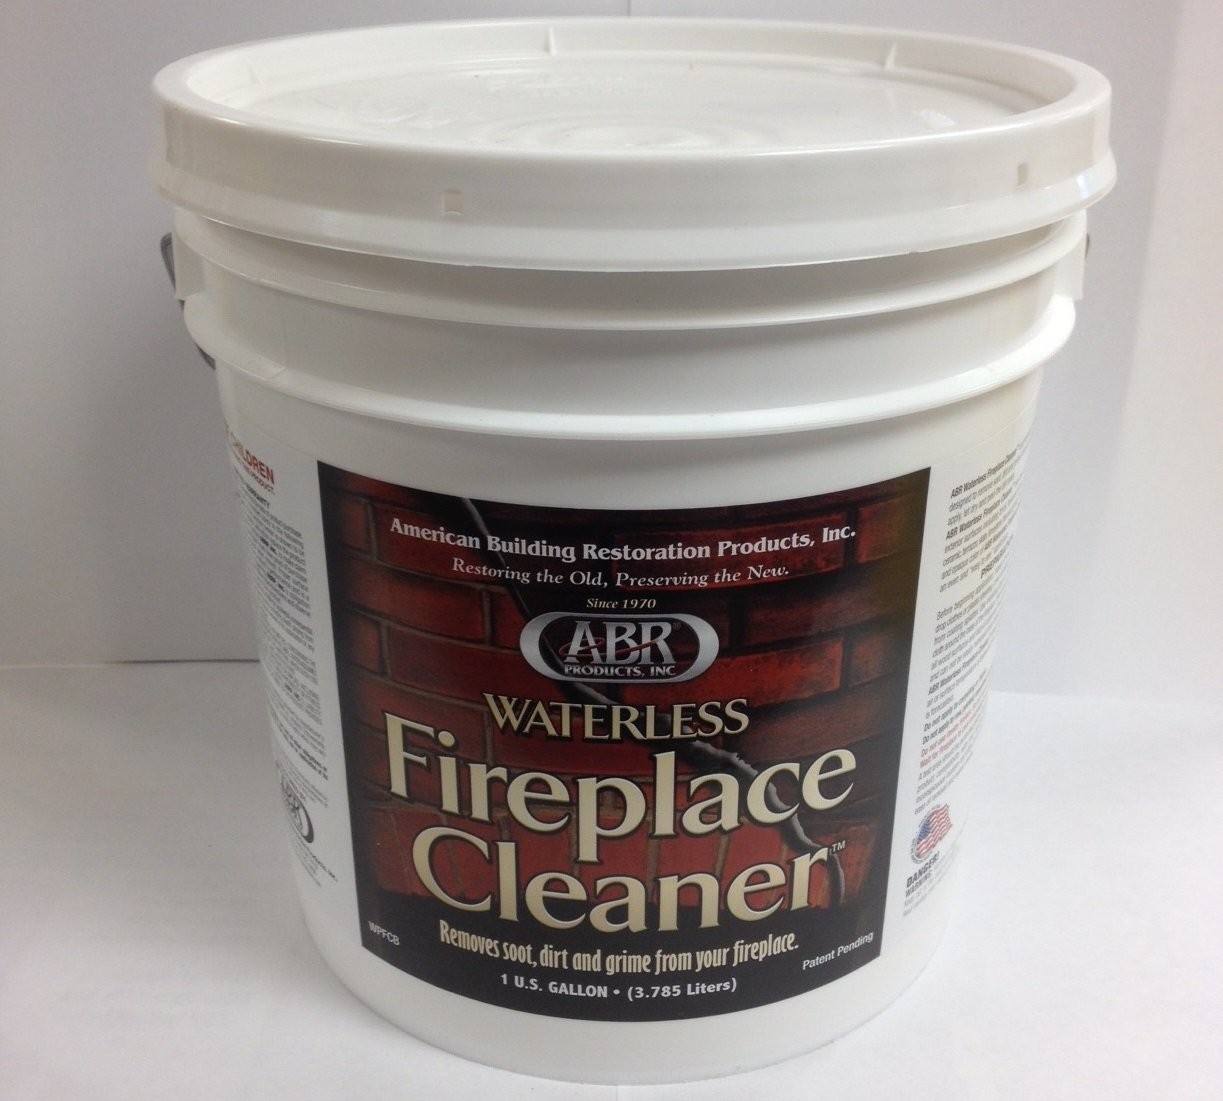 Amazon.com: ABR Waterless Fireplace Cleaner: Home & Kitchen